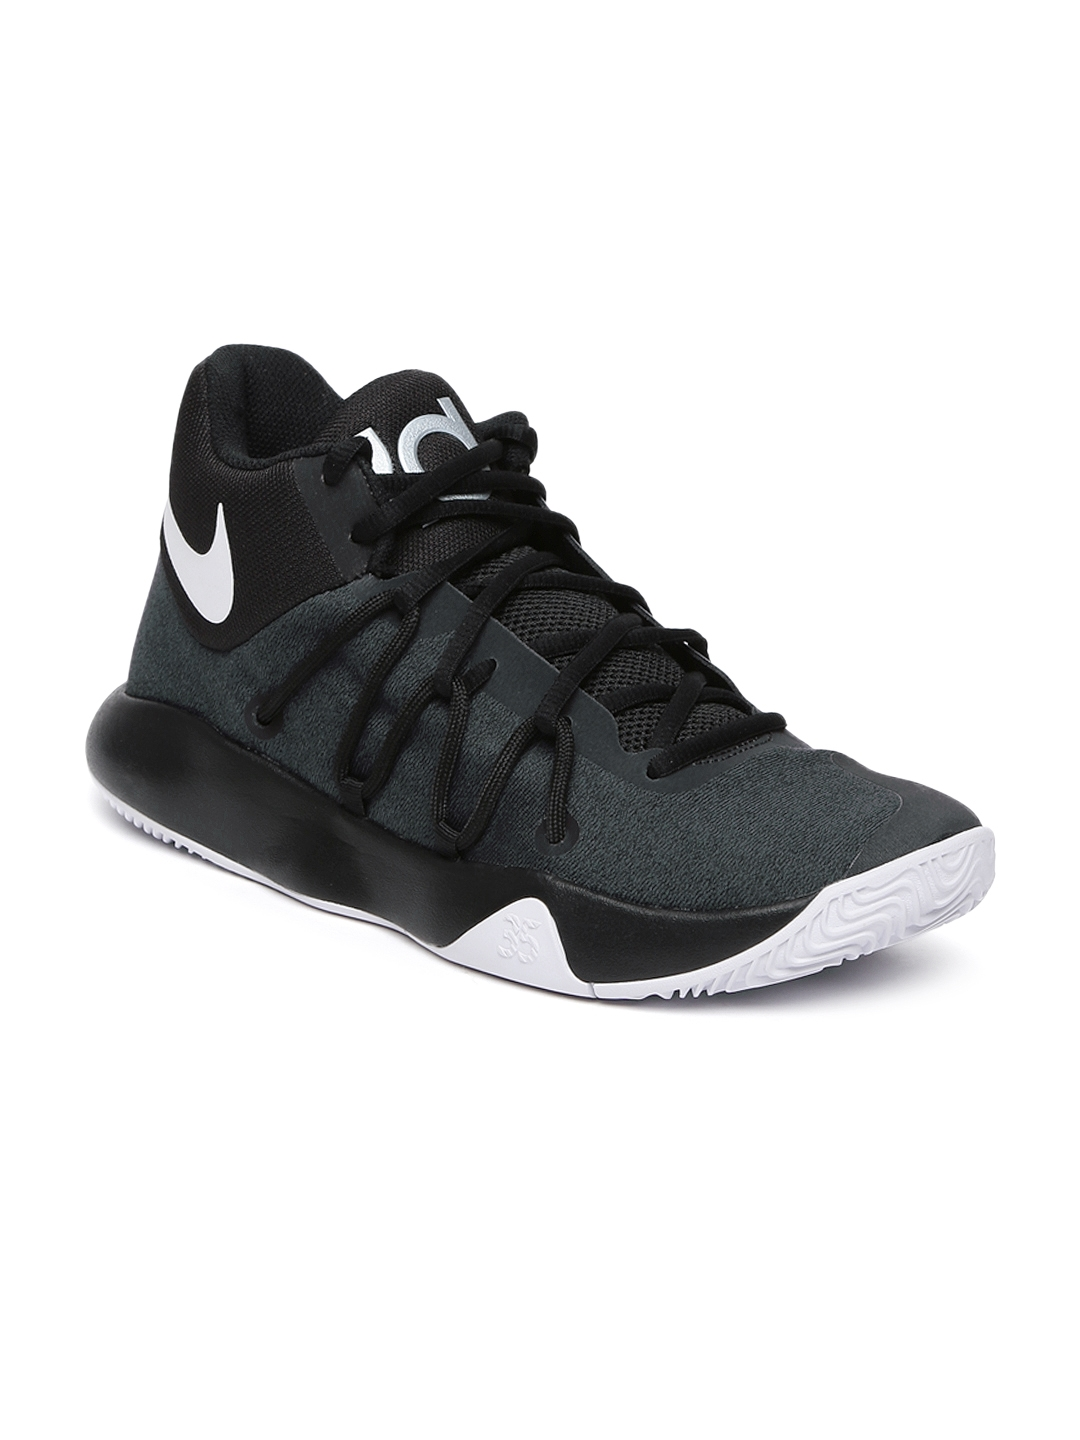 bed234cc78 11503481552722-Nike-Men-Charcoal-Grey-KD-Trey-5-V-Basketball-Shoes -8681503481552485-2.jpg